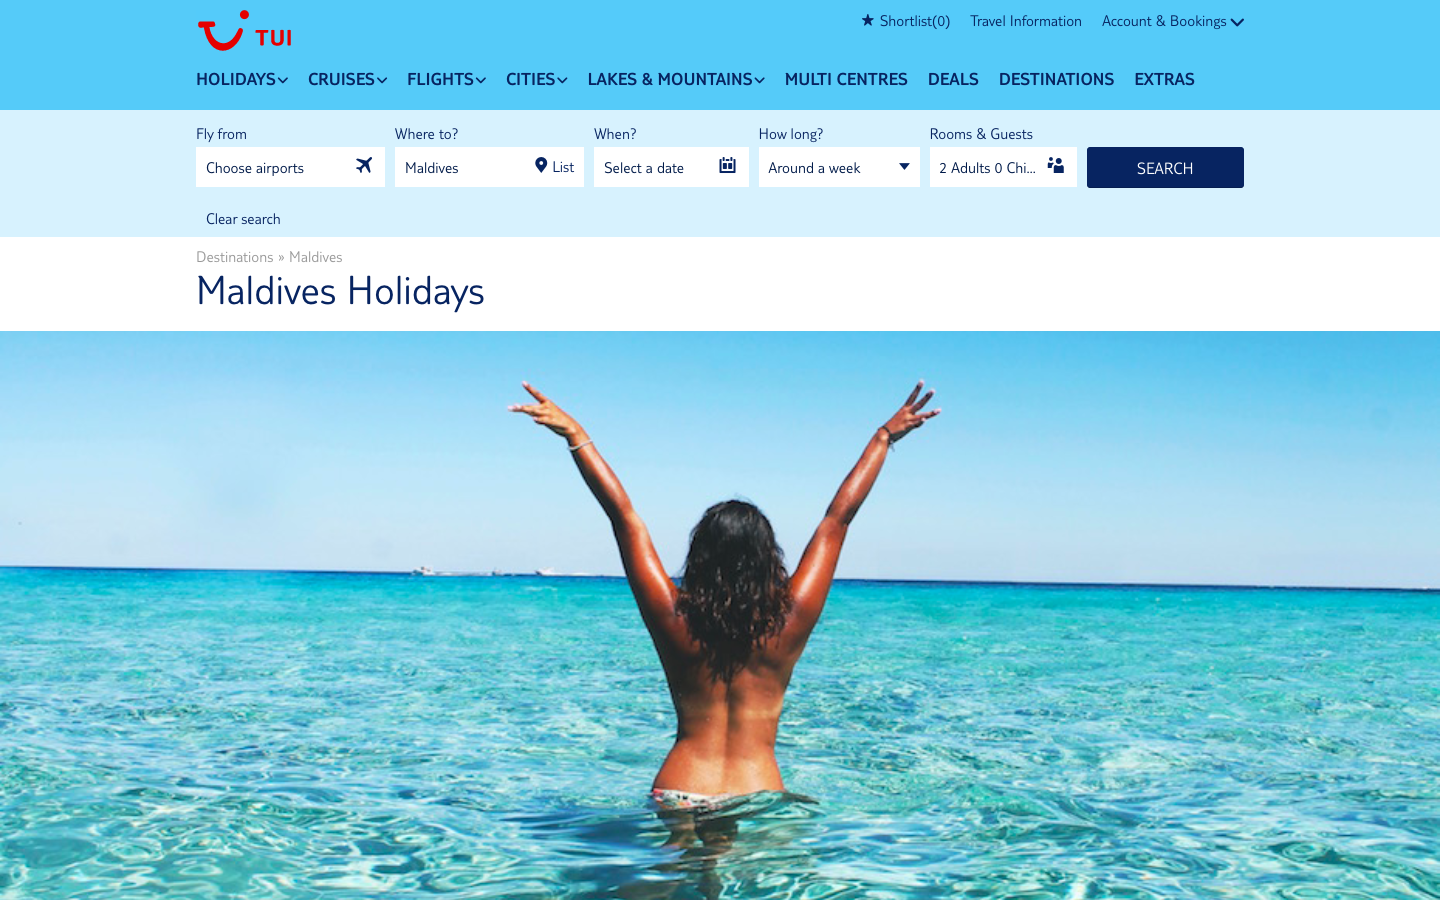 Thomson Holidays luxury beach branding